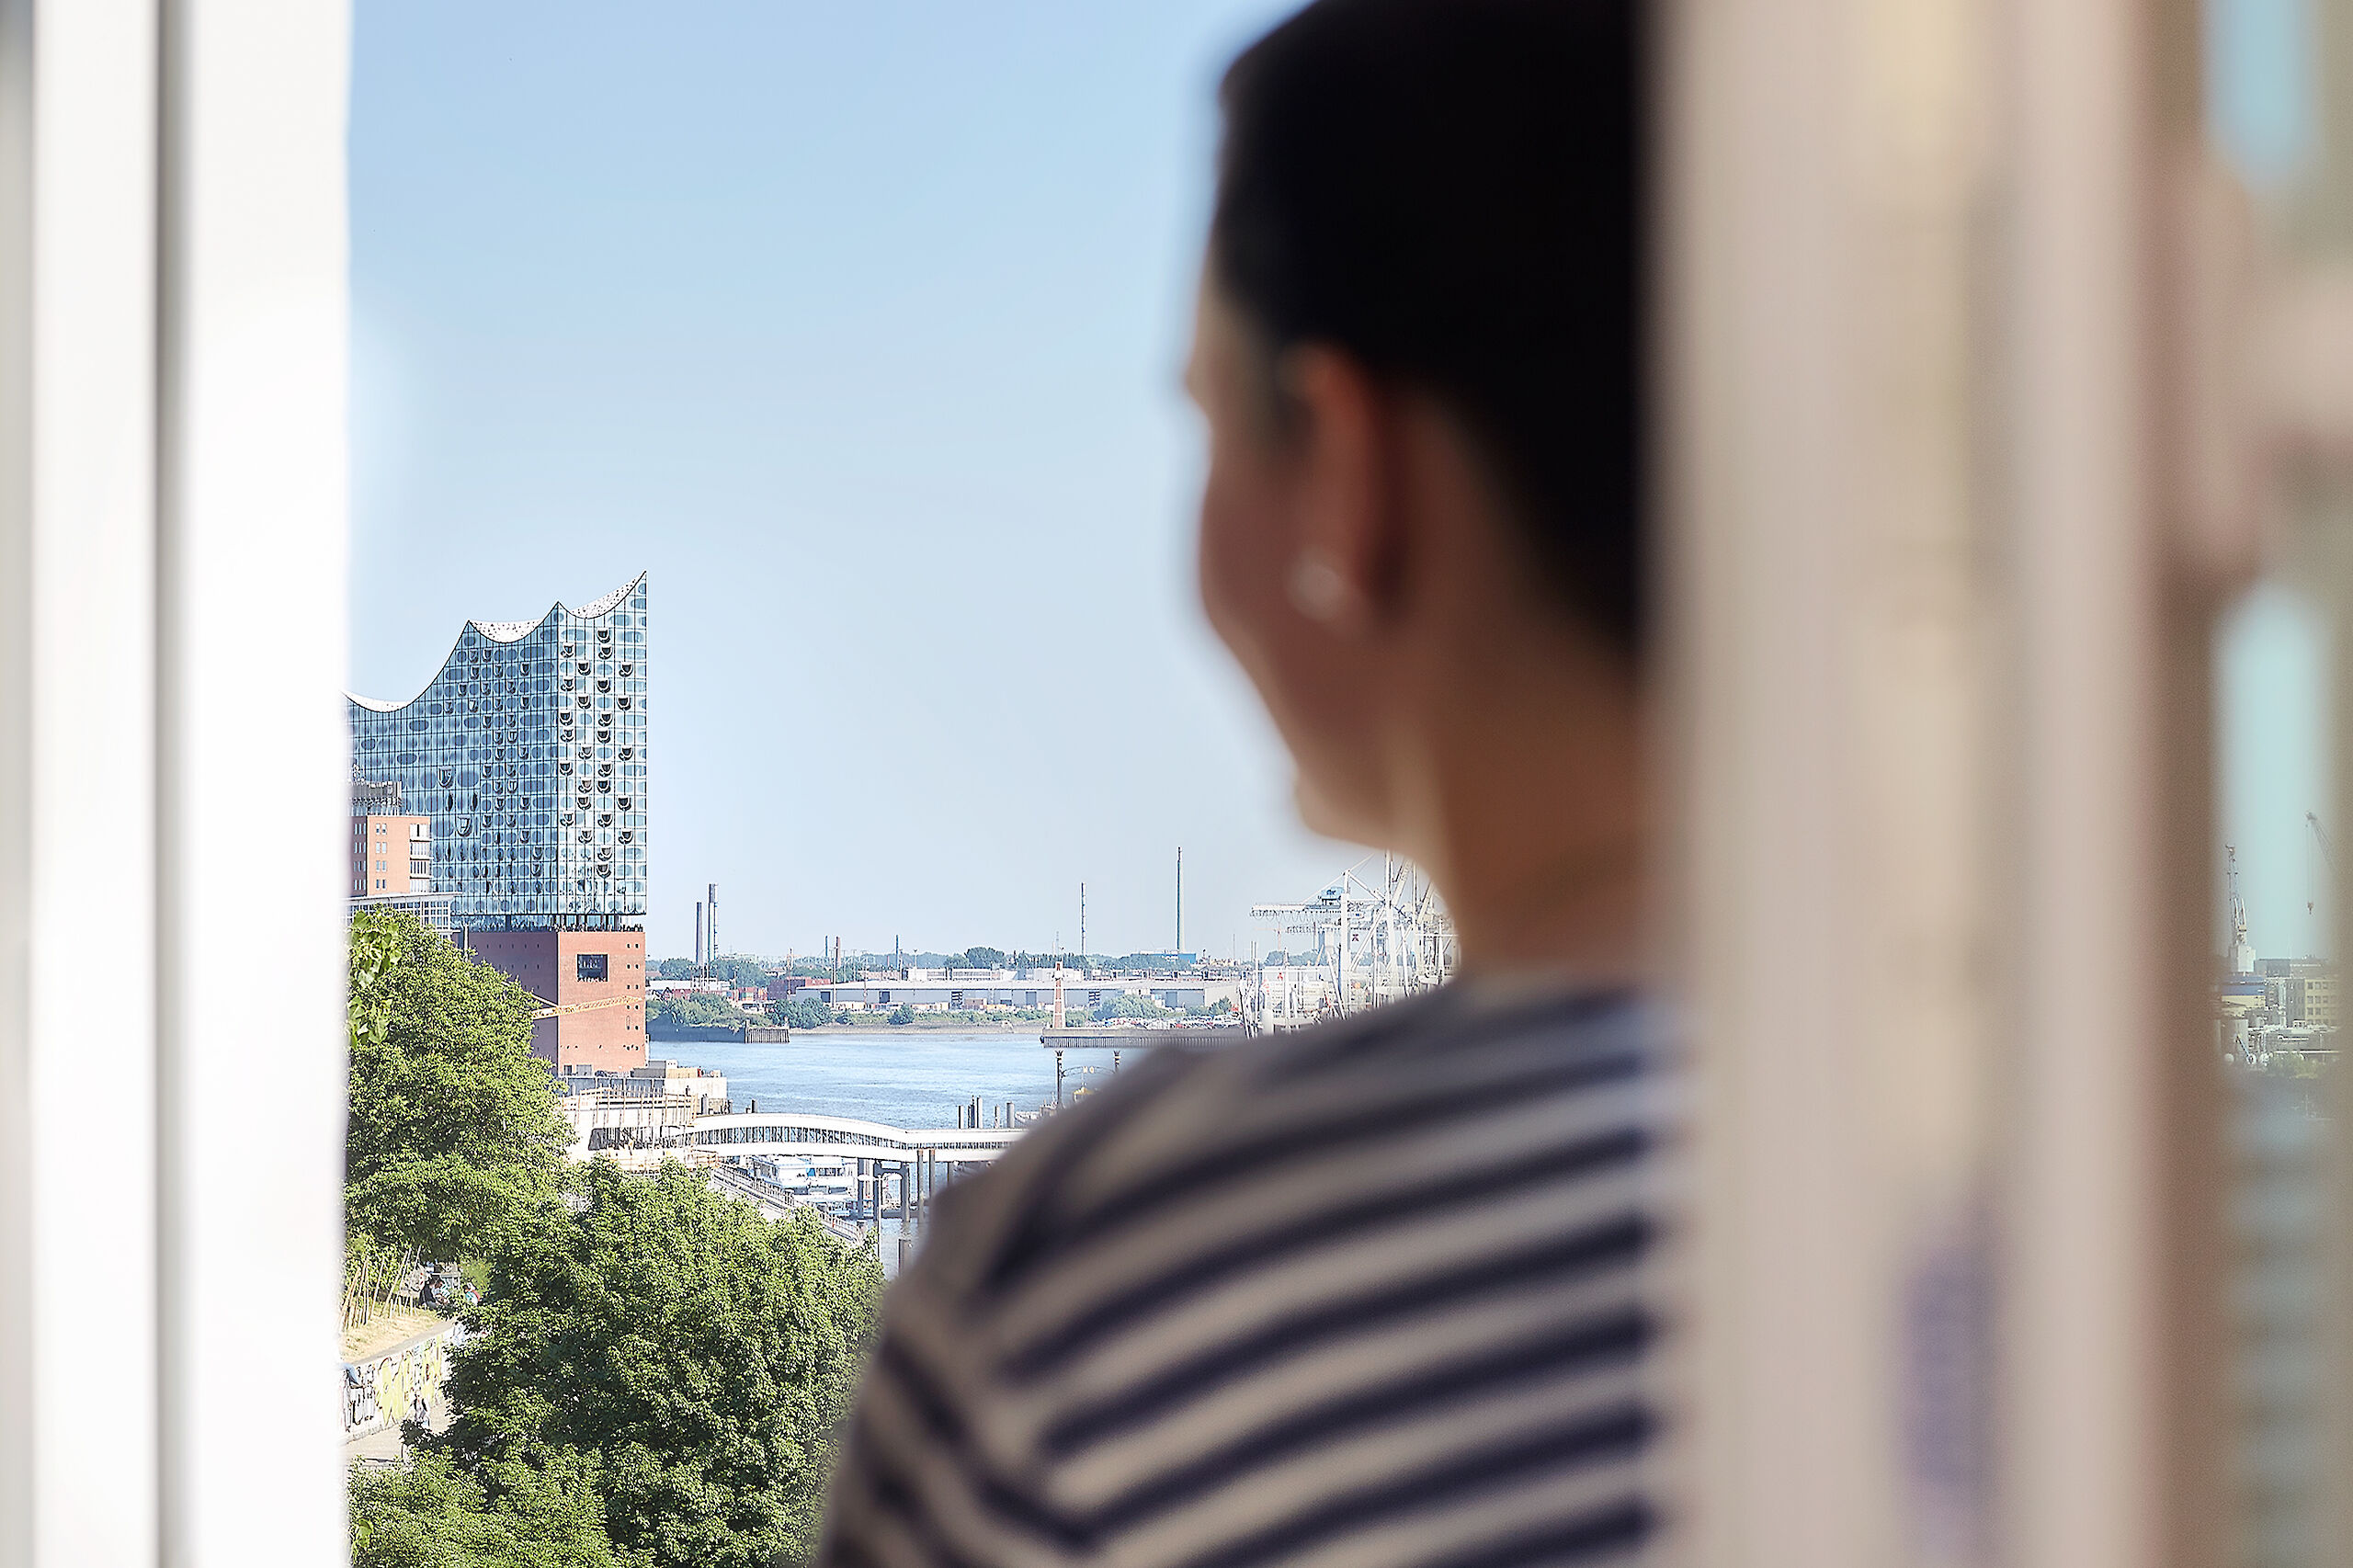 A guest enjoying the view of the Elbphilharmonie from his hotel room